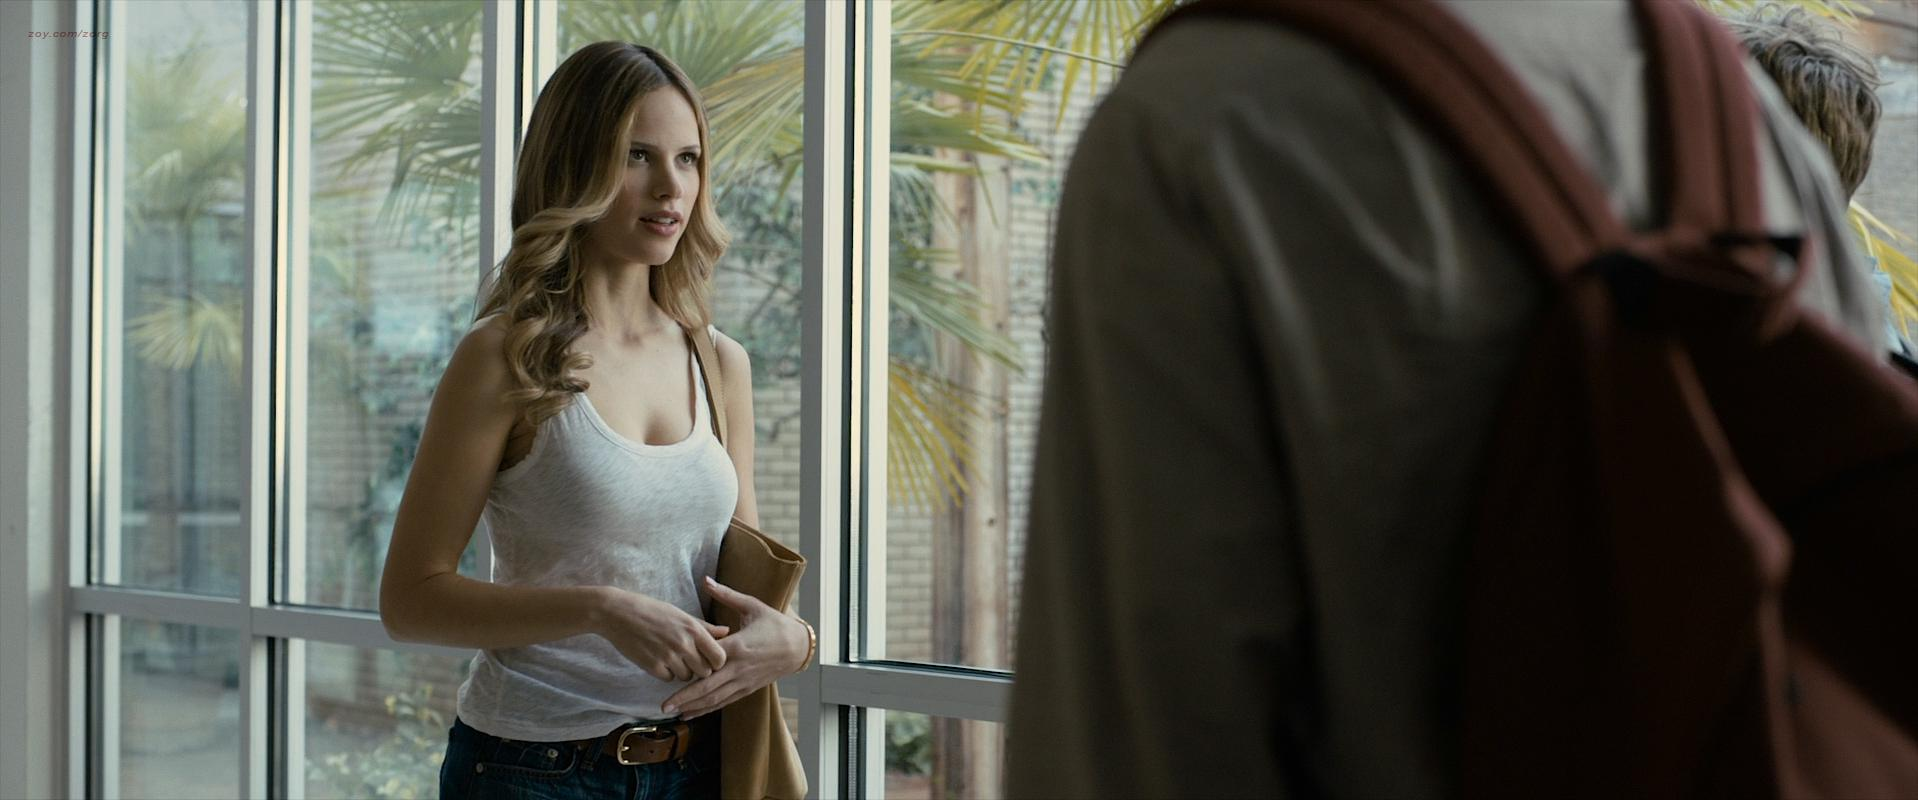 Nude Video Celebs  Halston Sage Sexy - Paper Towns 2015-5212